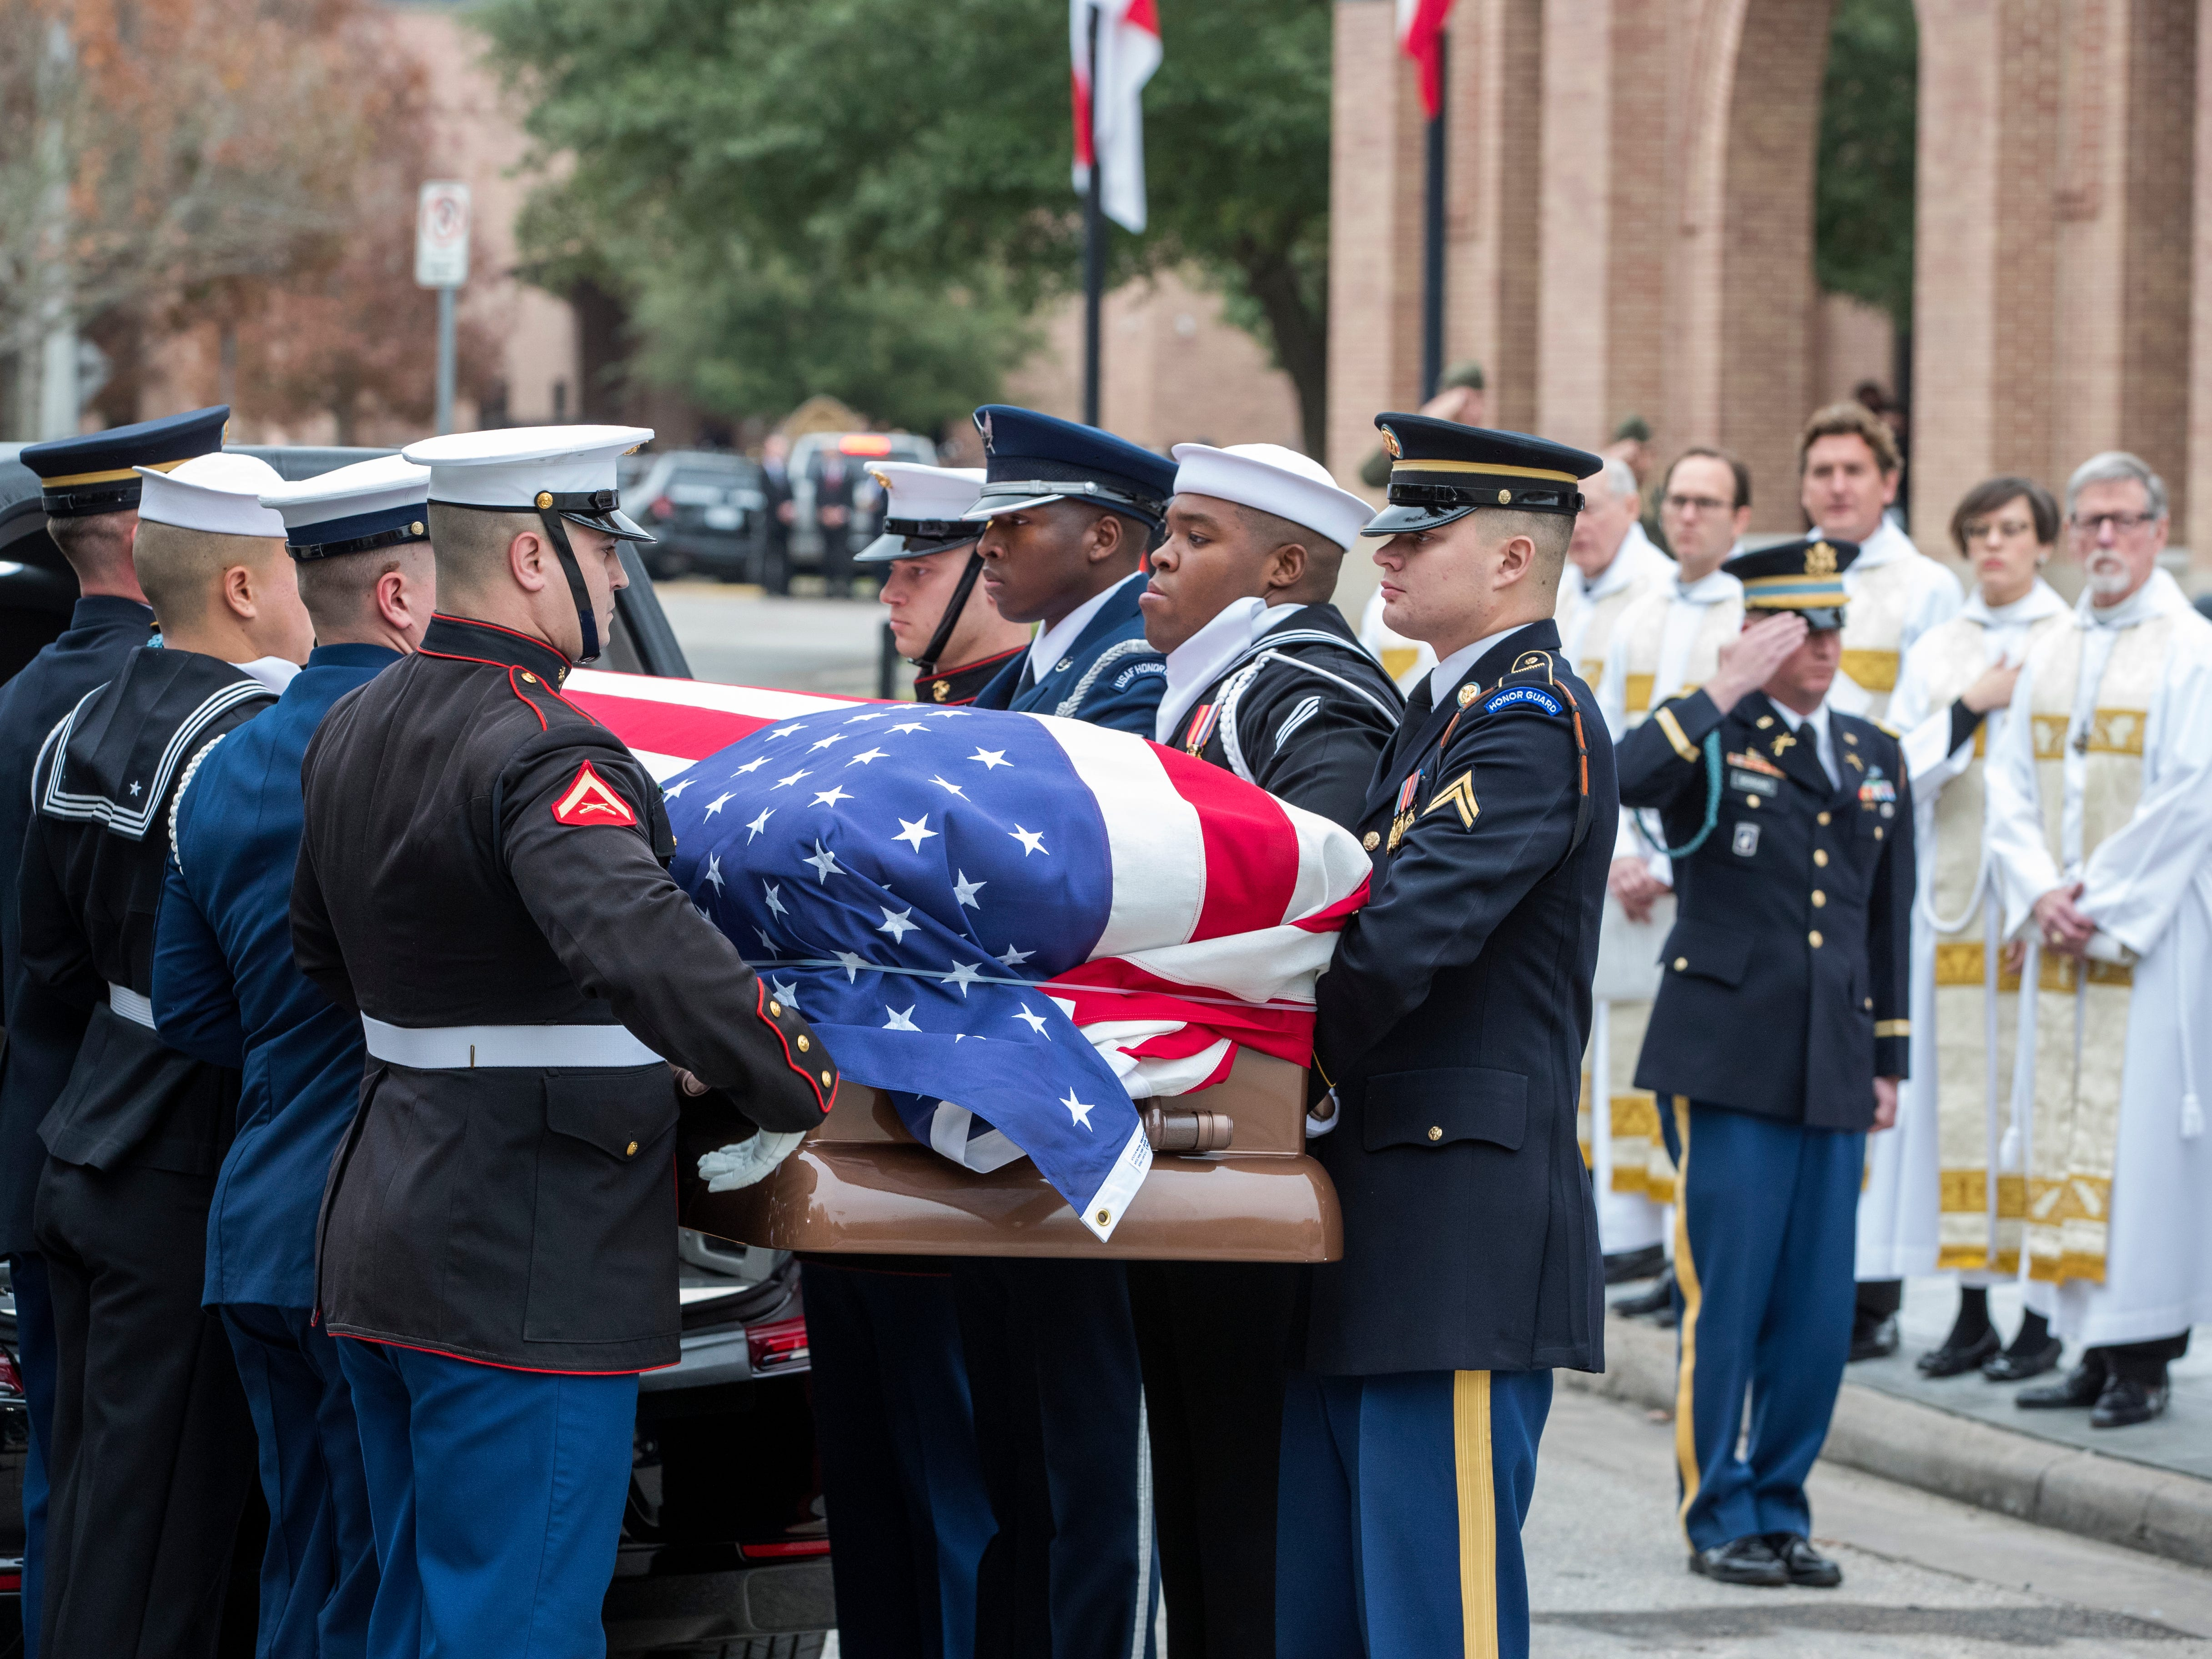 U.S. Service Members with the Ceremonial Honor Guard carry the casket of former President George H.W. Bush at the Funeral Service, St. Martin's Episcopal Church in Houston on Dec. 6, 2018.